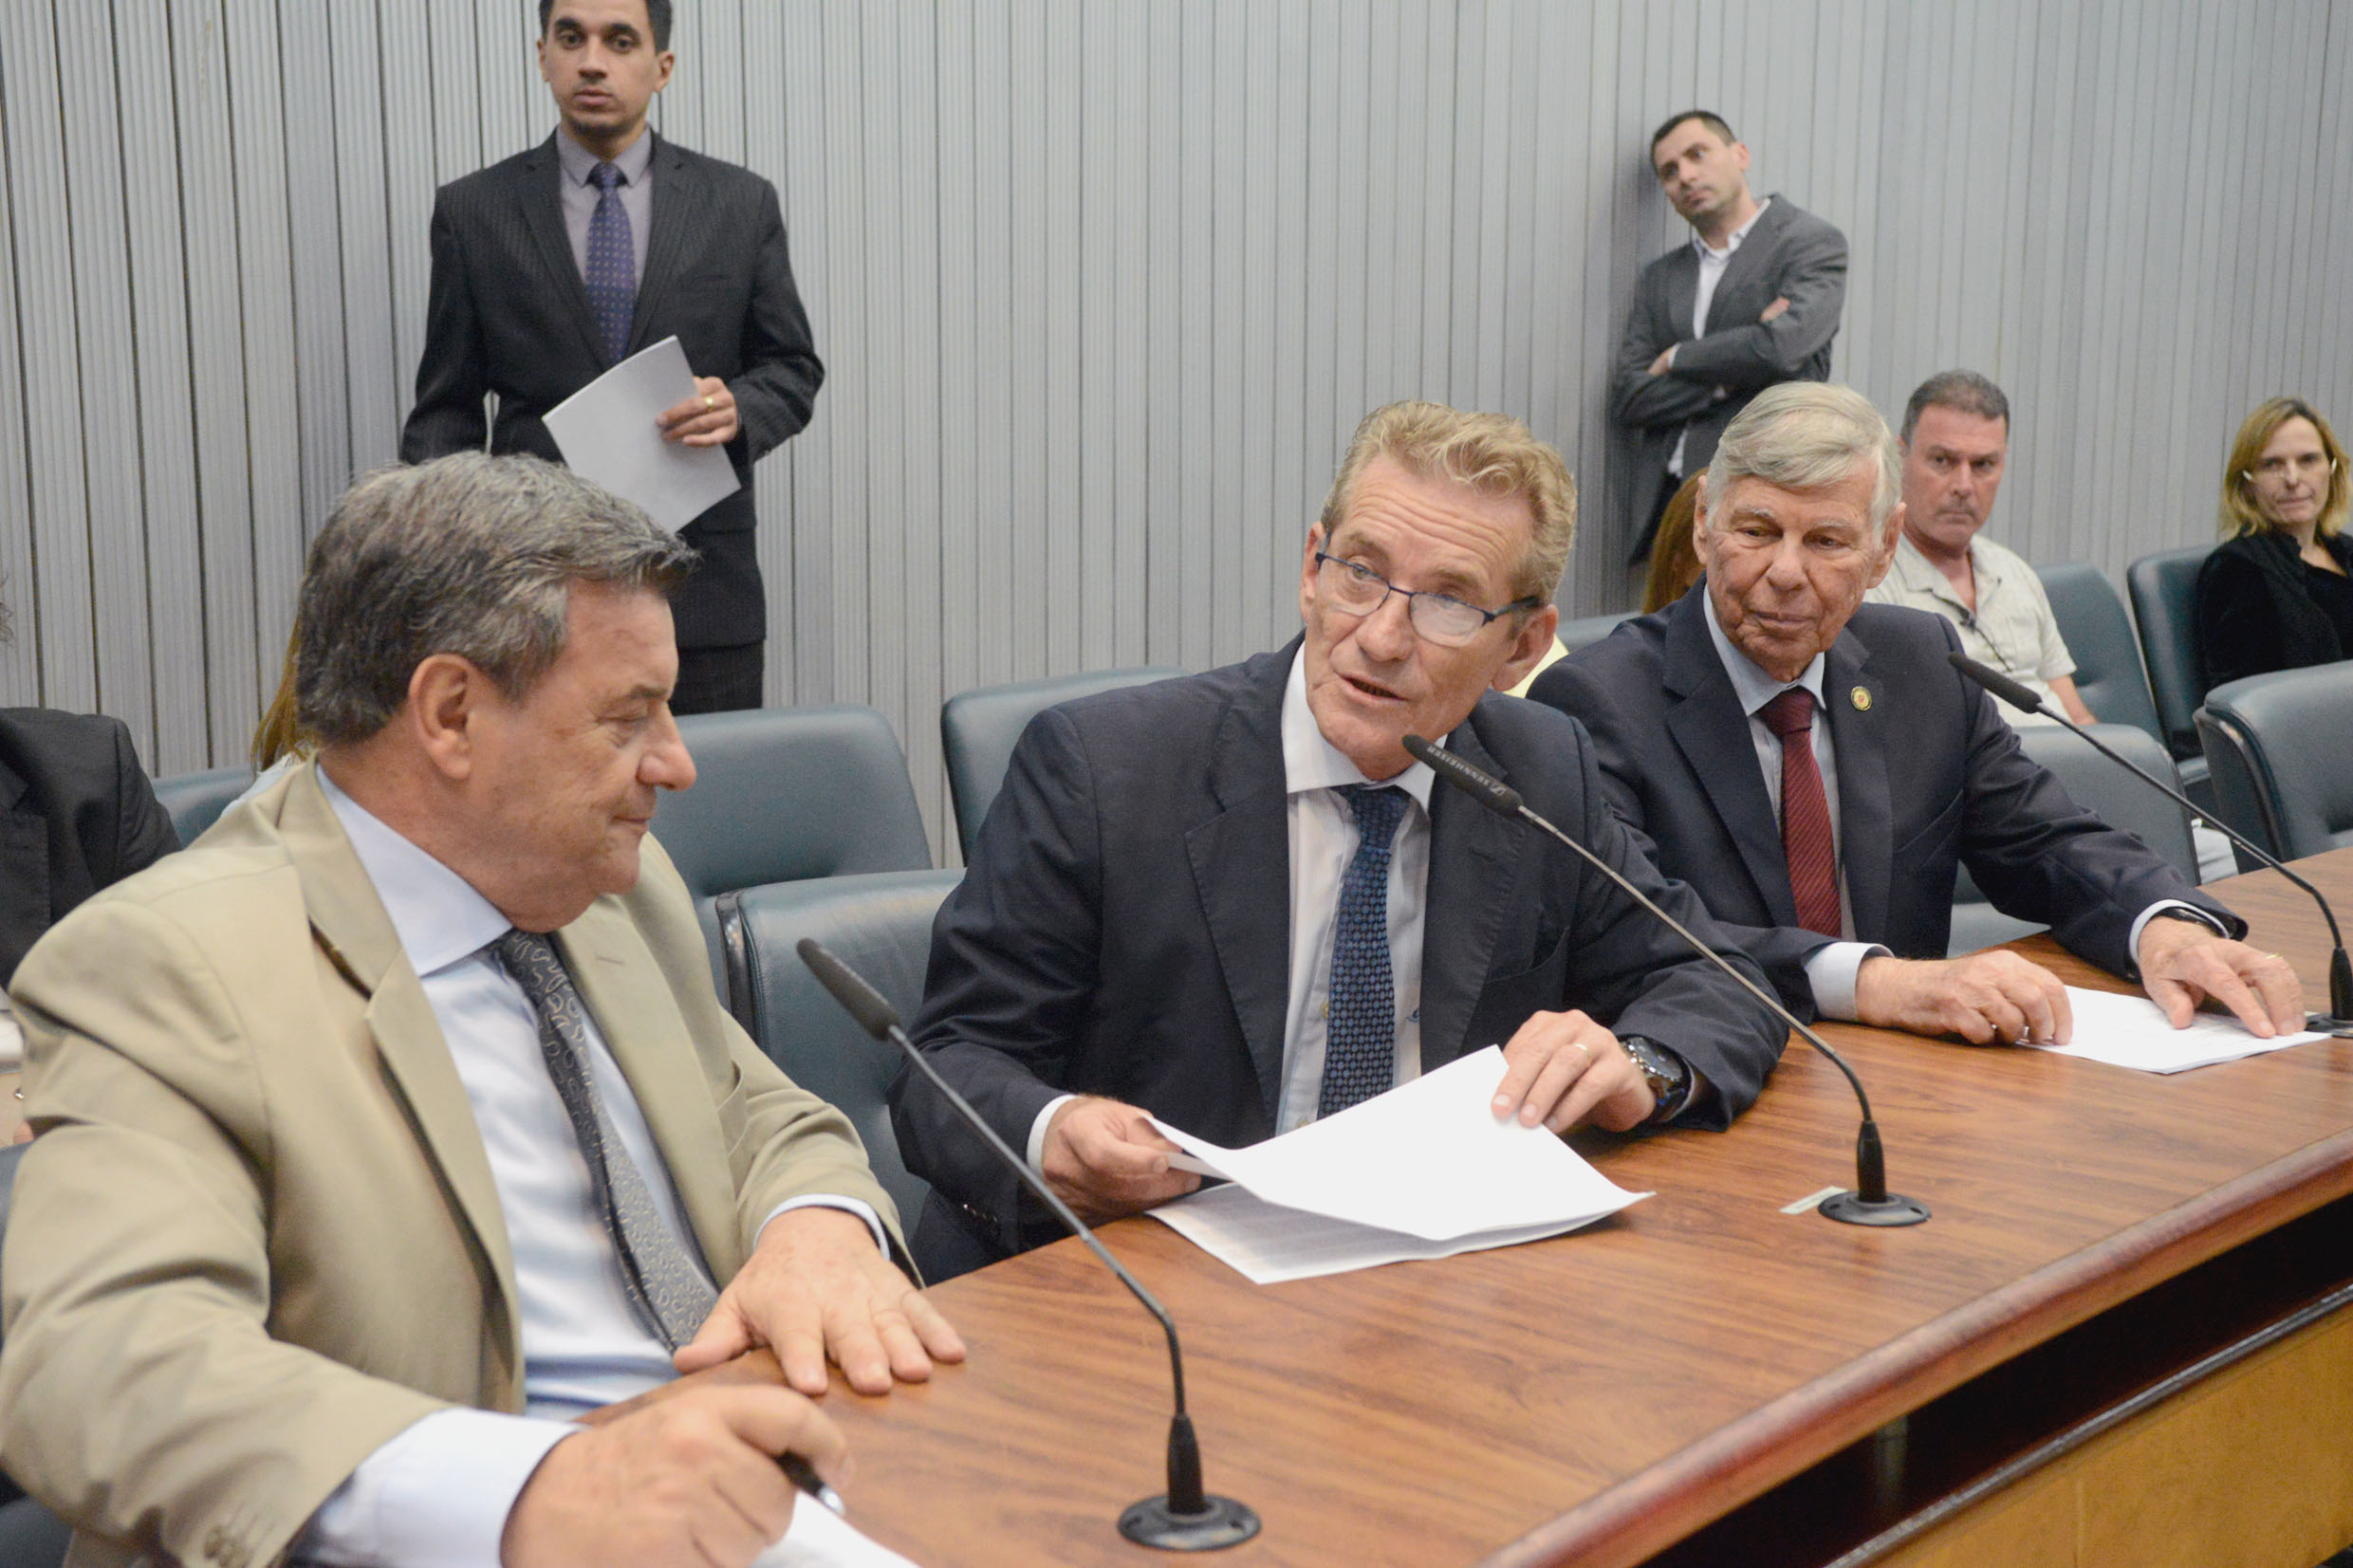 Parlamentares na comissão<a style='float:right' href='https://www3.al.sp.gov.br/repositorio/noticia/N-10-2018/fg227026.jpg' target=_blank><img src='/_img/material-file-download-white.png' width='14px' alt='Clique para baixar a imagem'></a>